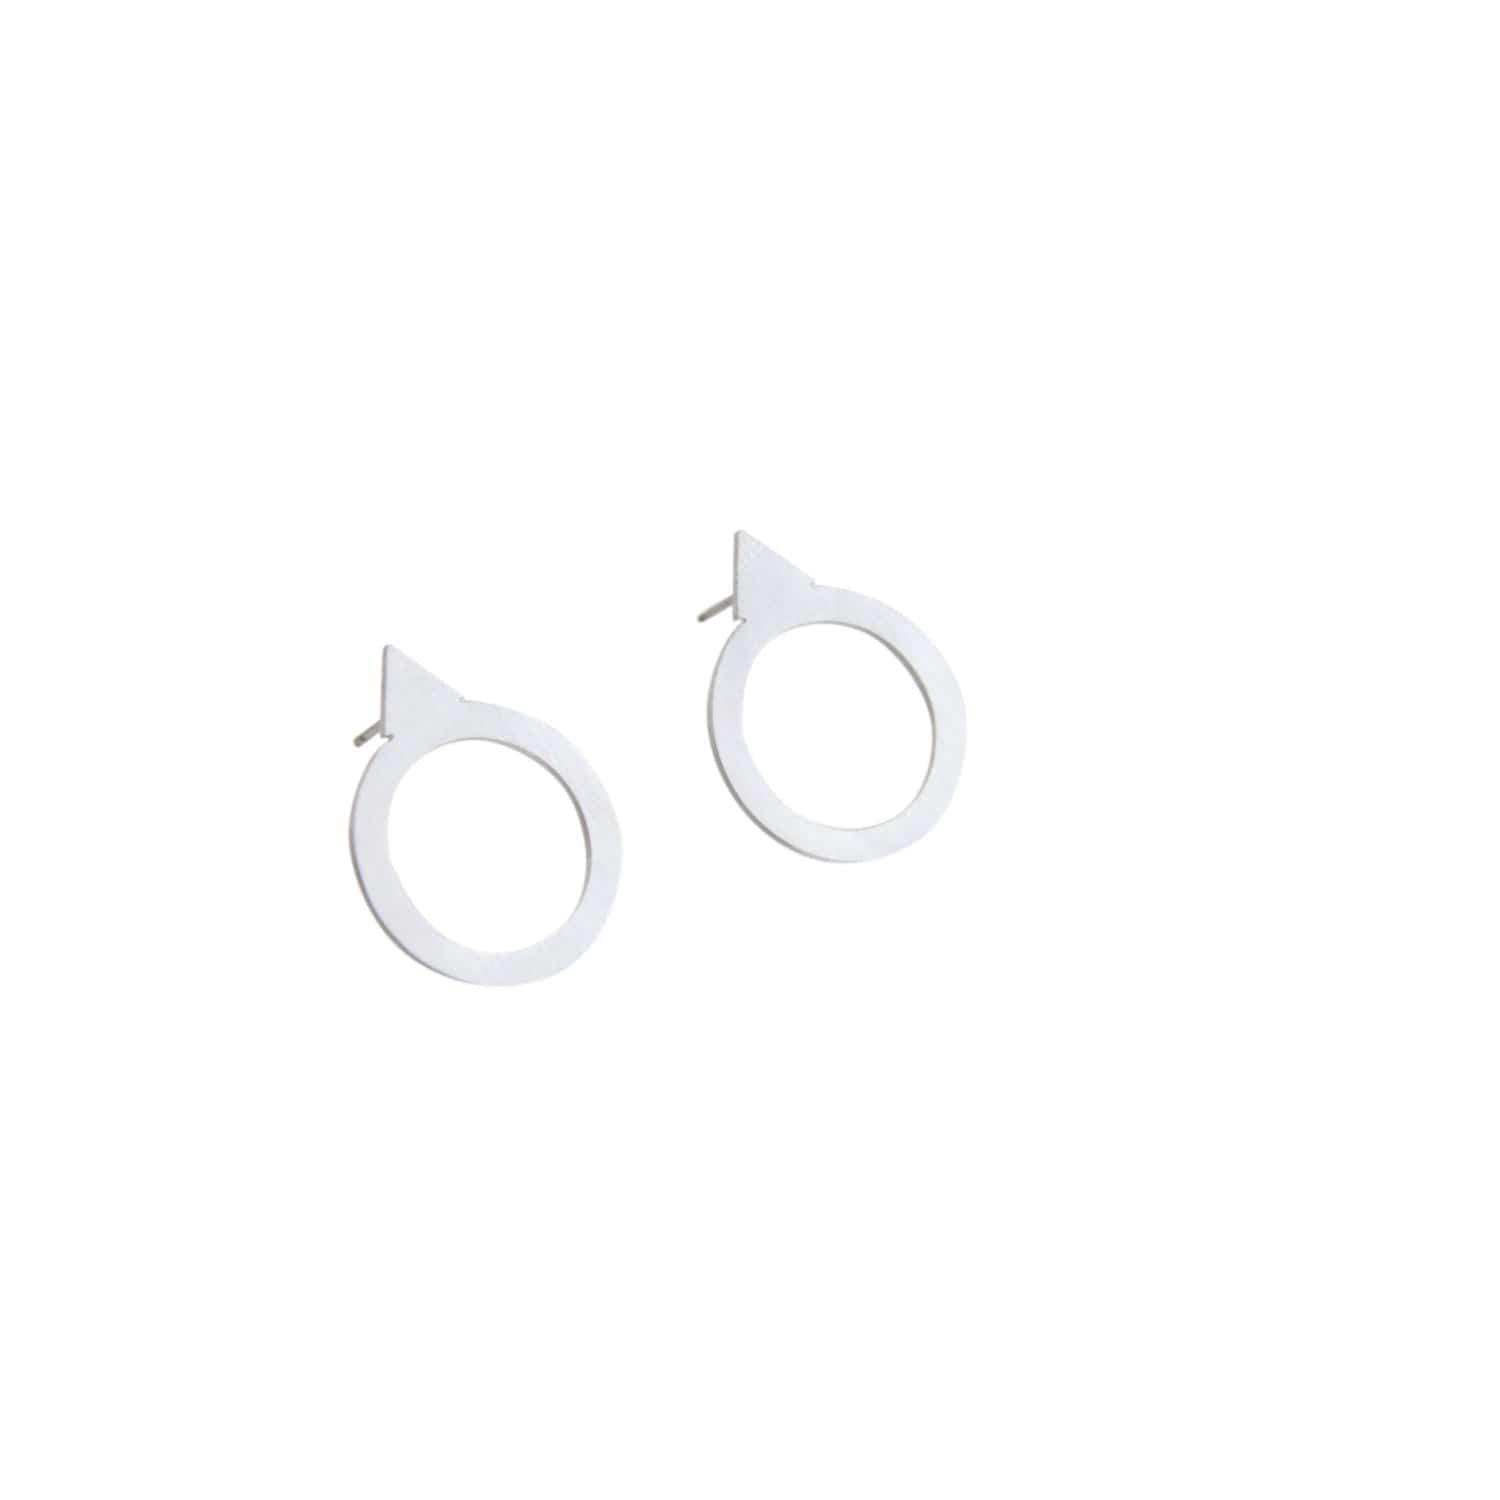 tothemetal jewelry Triangle + Cutout Circle Silver Post Earrings